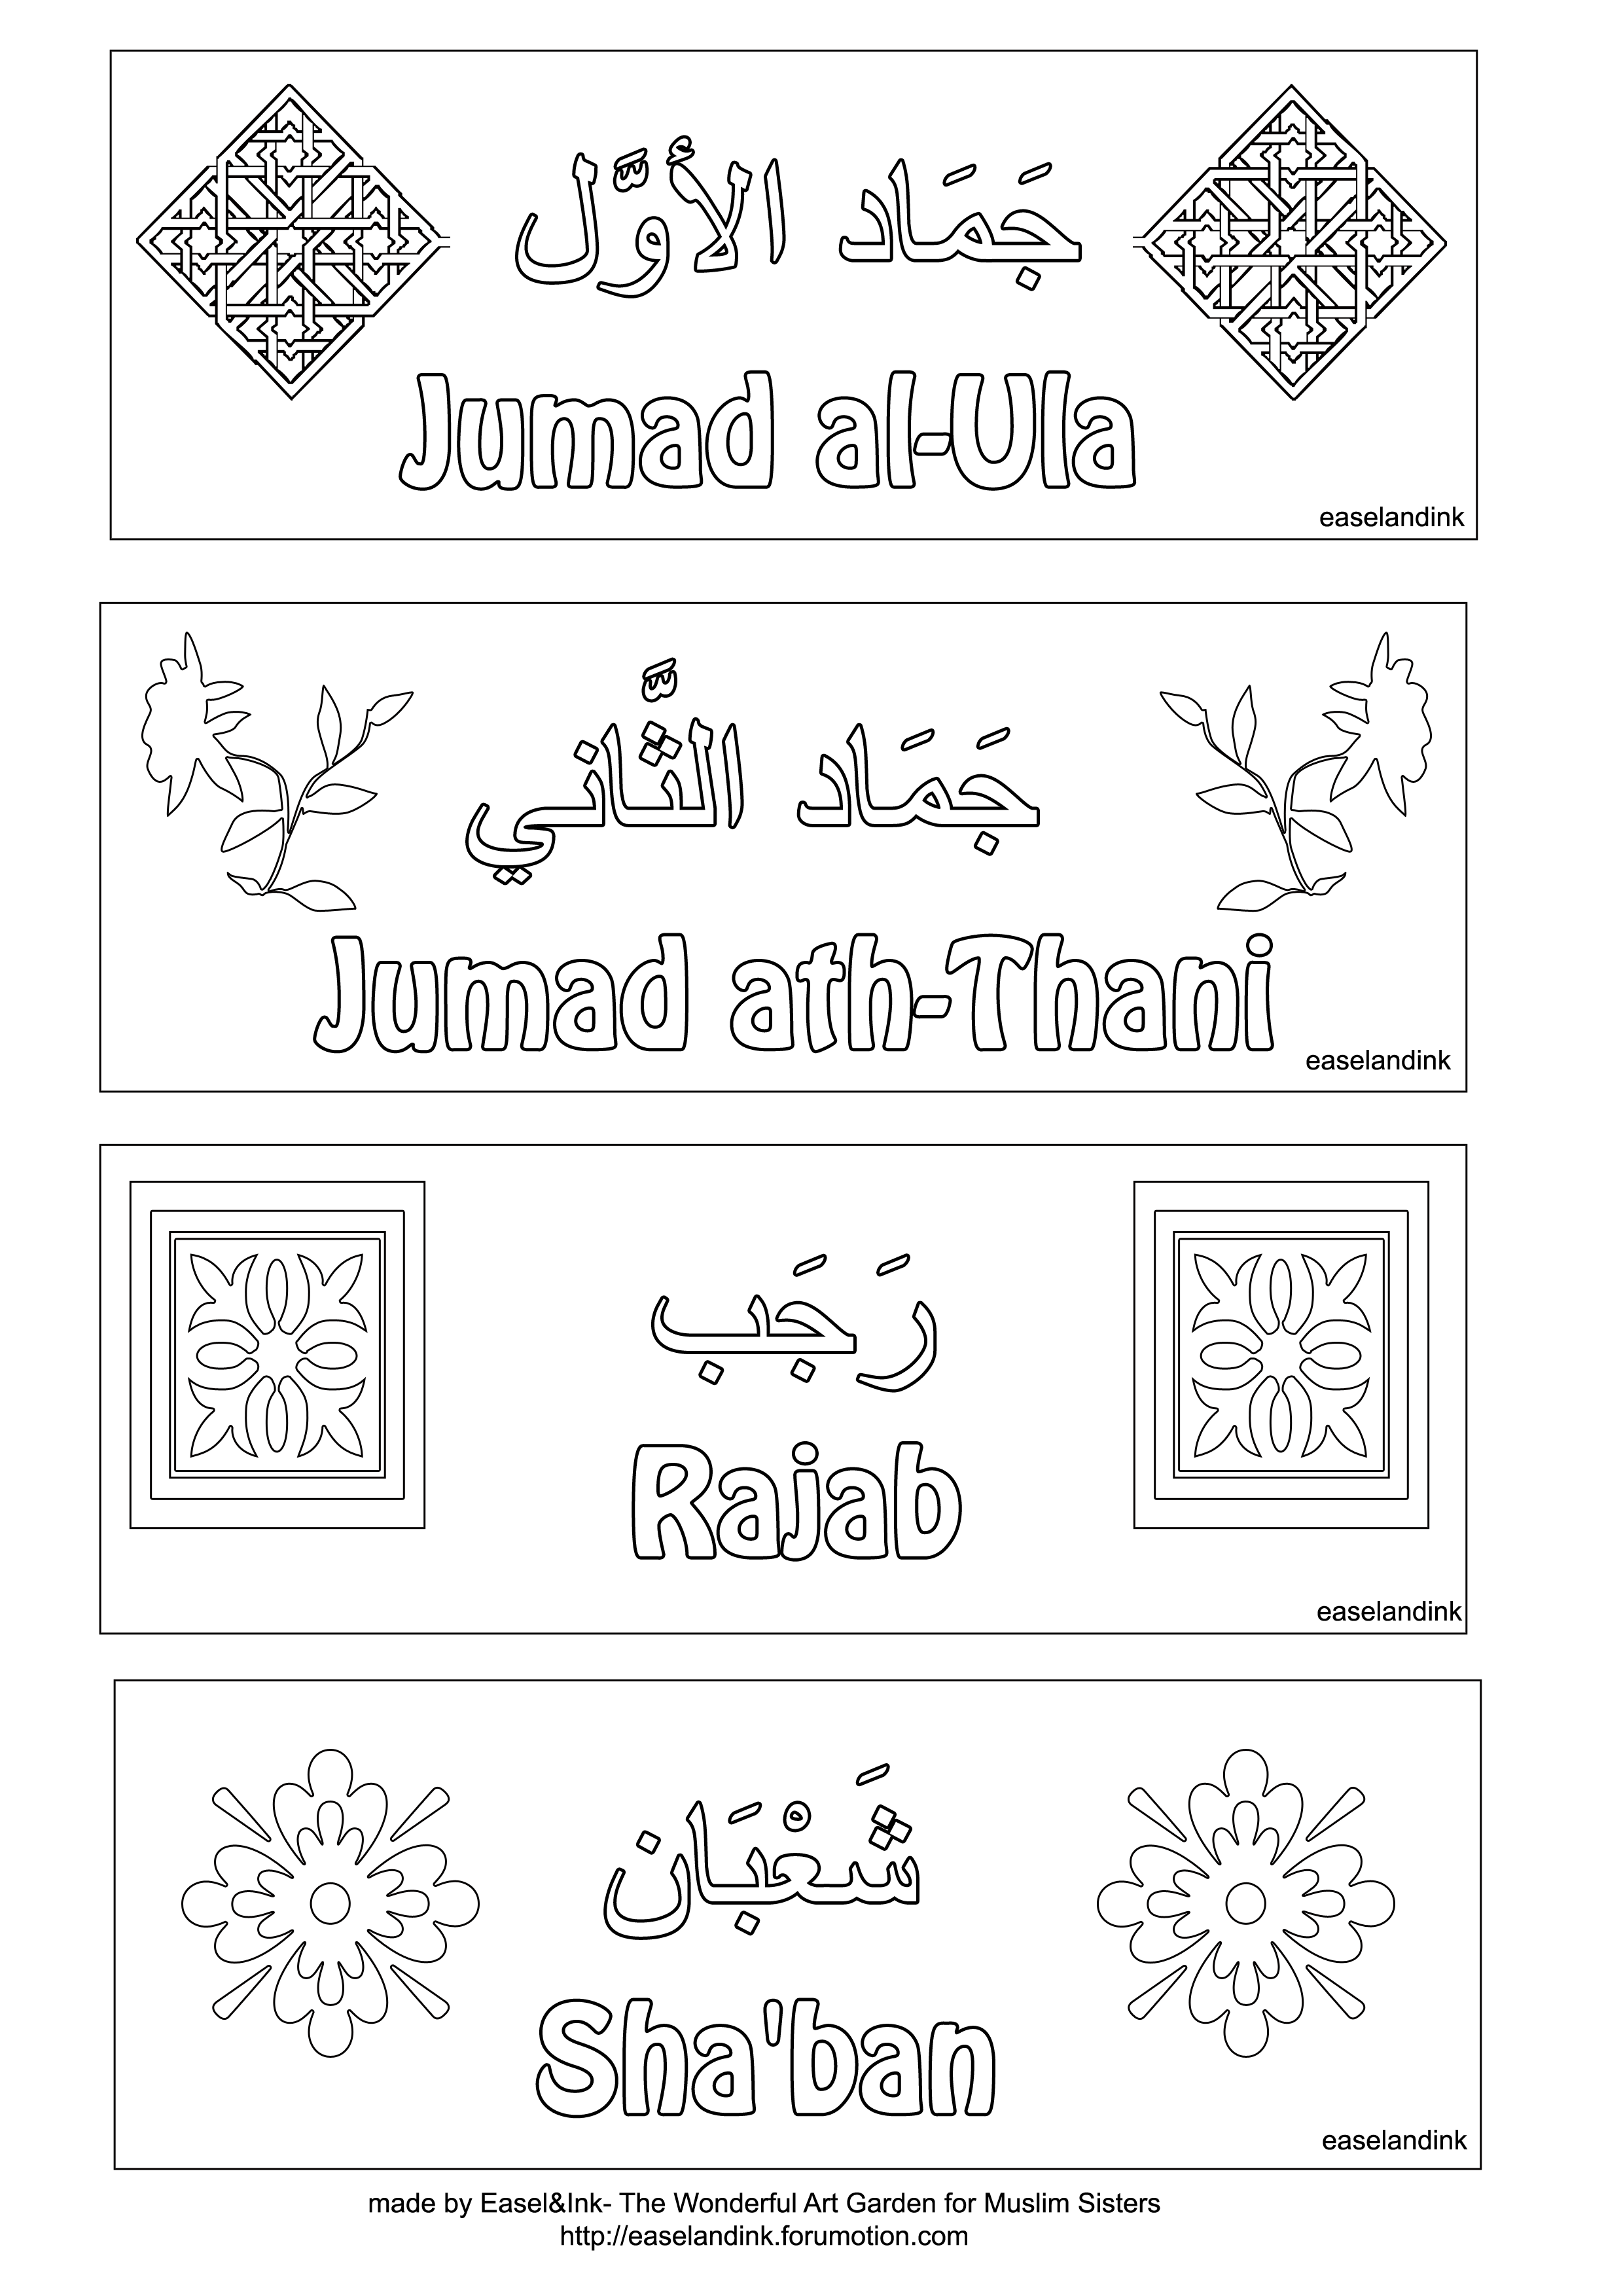 Islamic Months In English And Arabic 5 Jumad Al Ula 6